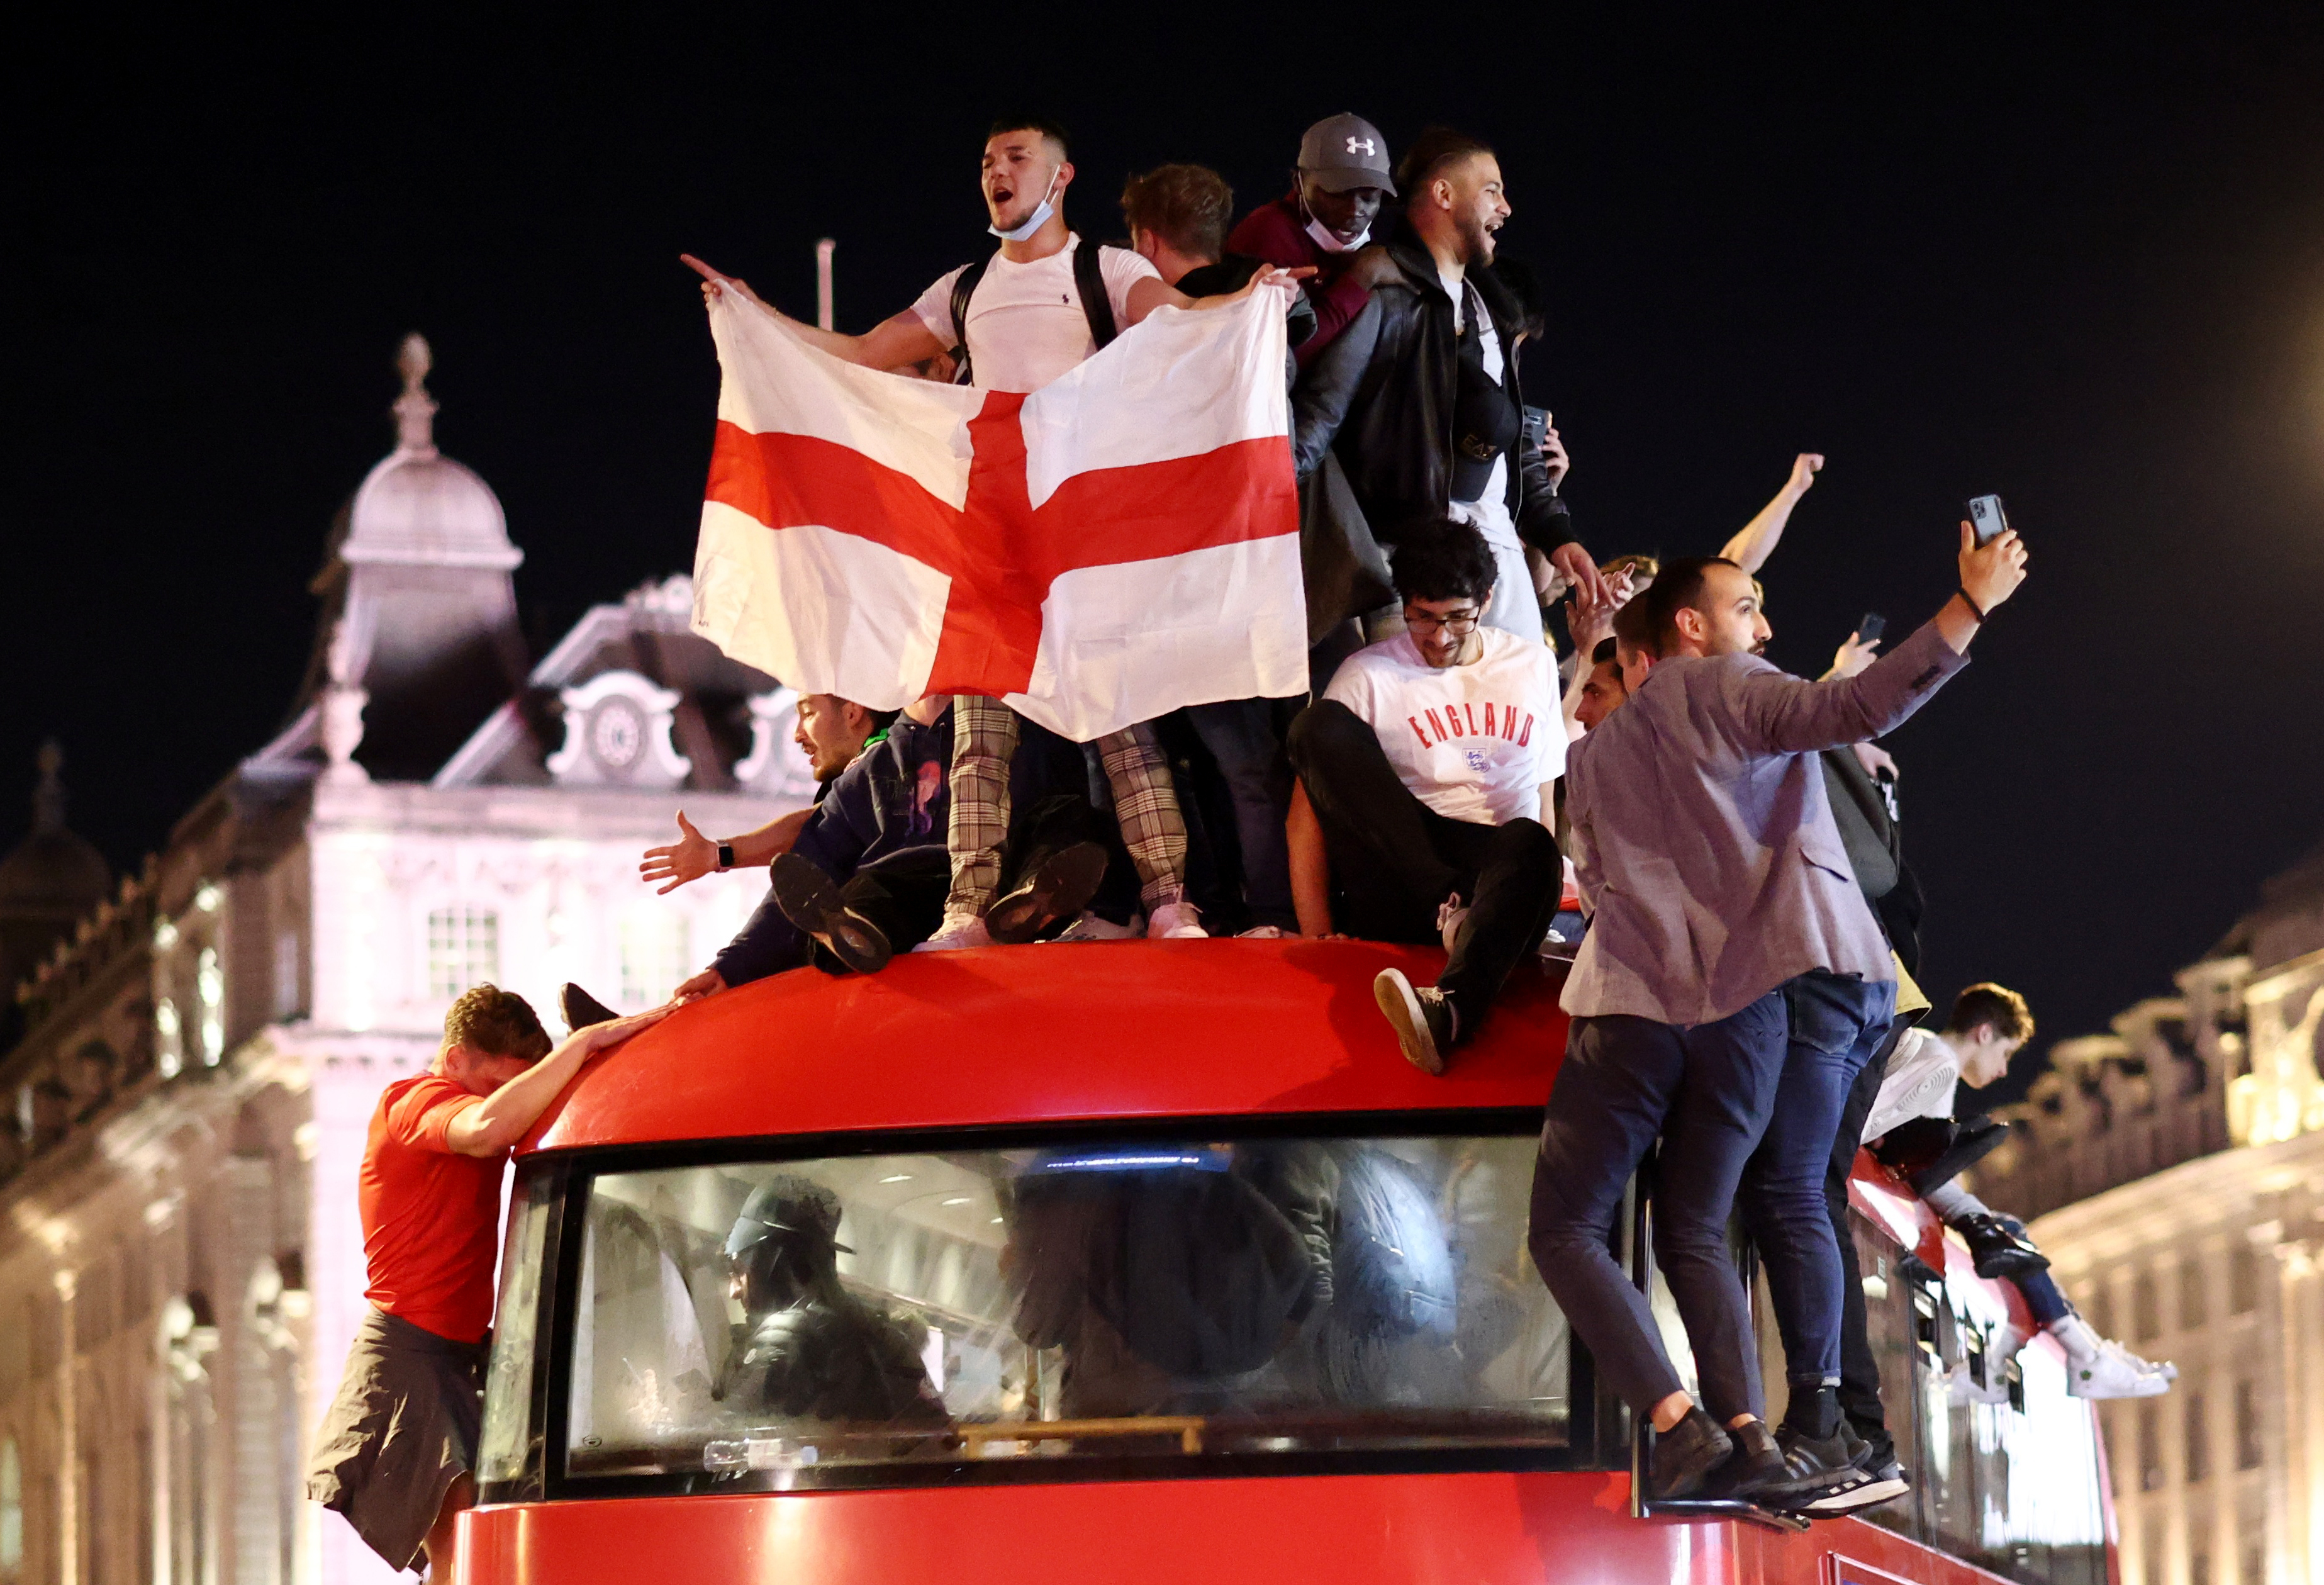 Soccer Football - Euro 2020 - Fans gather for England v Denmark - Piccadilly Circus, London, Britain - July 7, 2021 England fans celebrate after the match REUTERS/Henry Nicholls